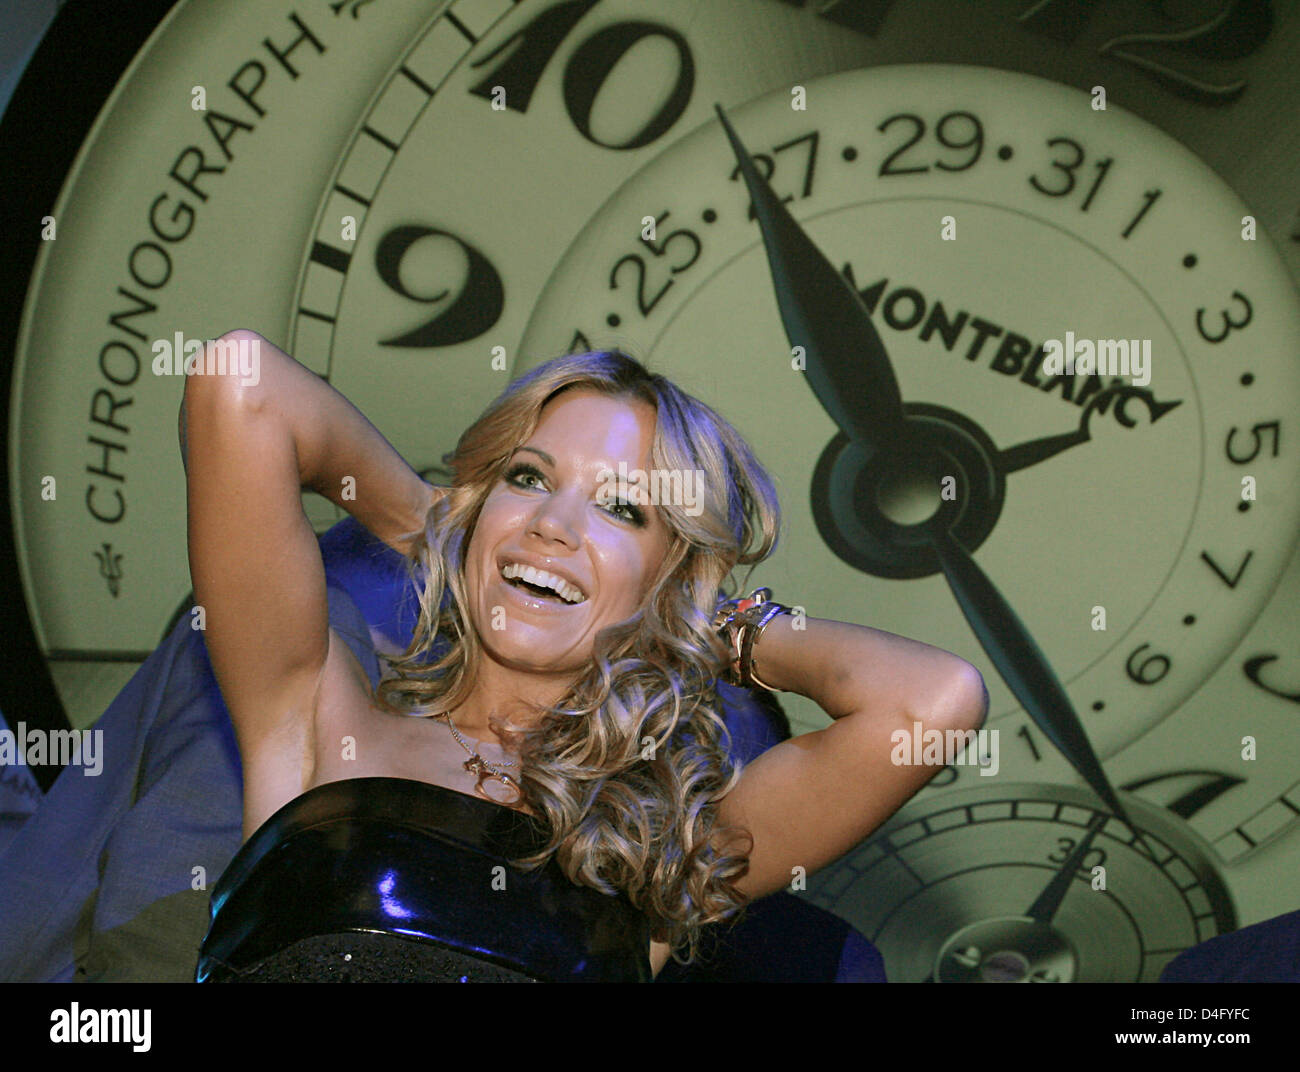 Model Sylvie van der Vaart poses during a Montblanc watch presentation at KaDeWe in Berlin, Germany, 04 September Stock Photo